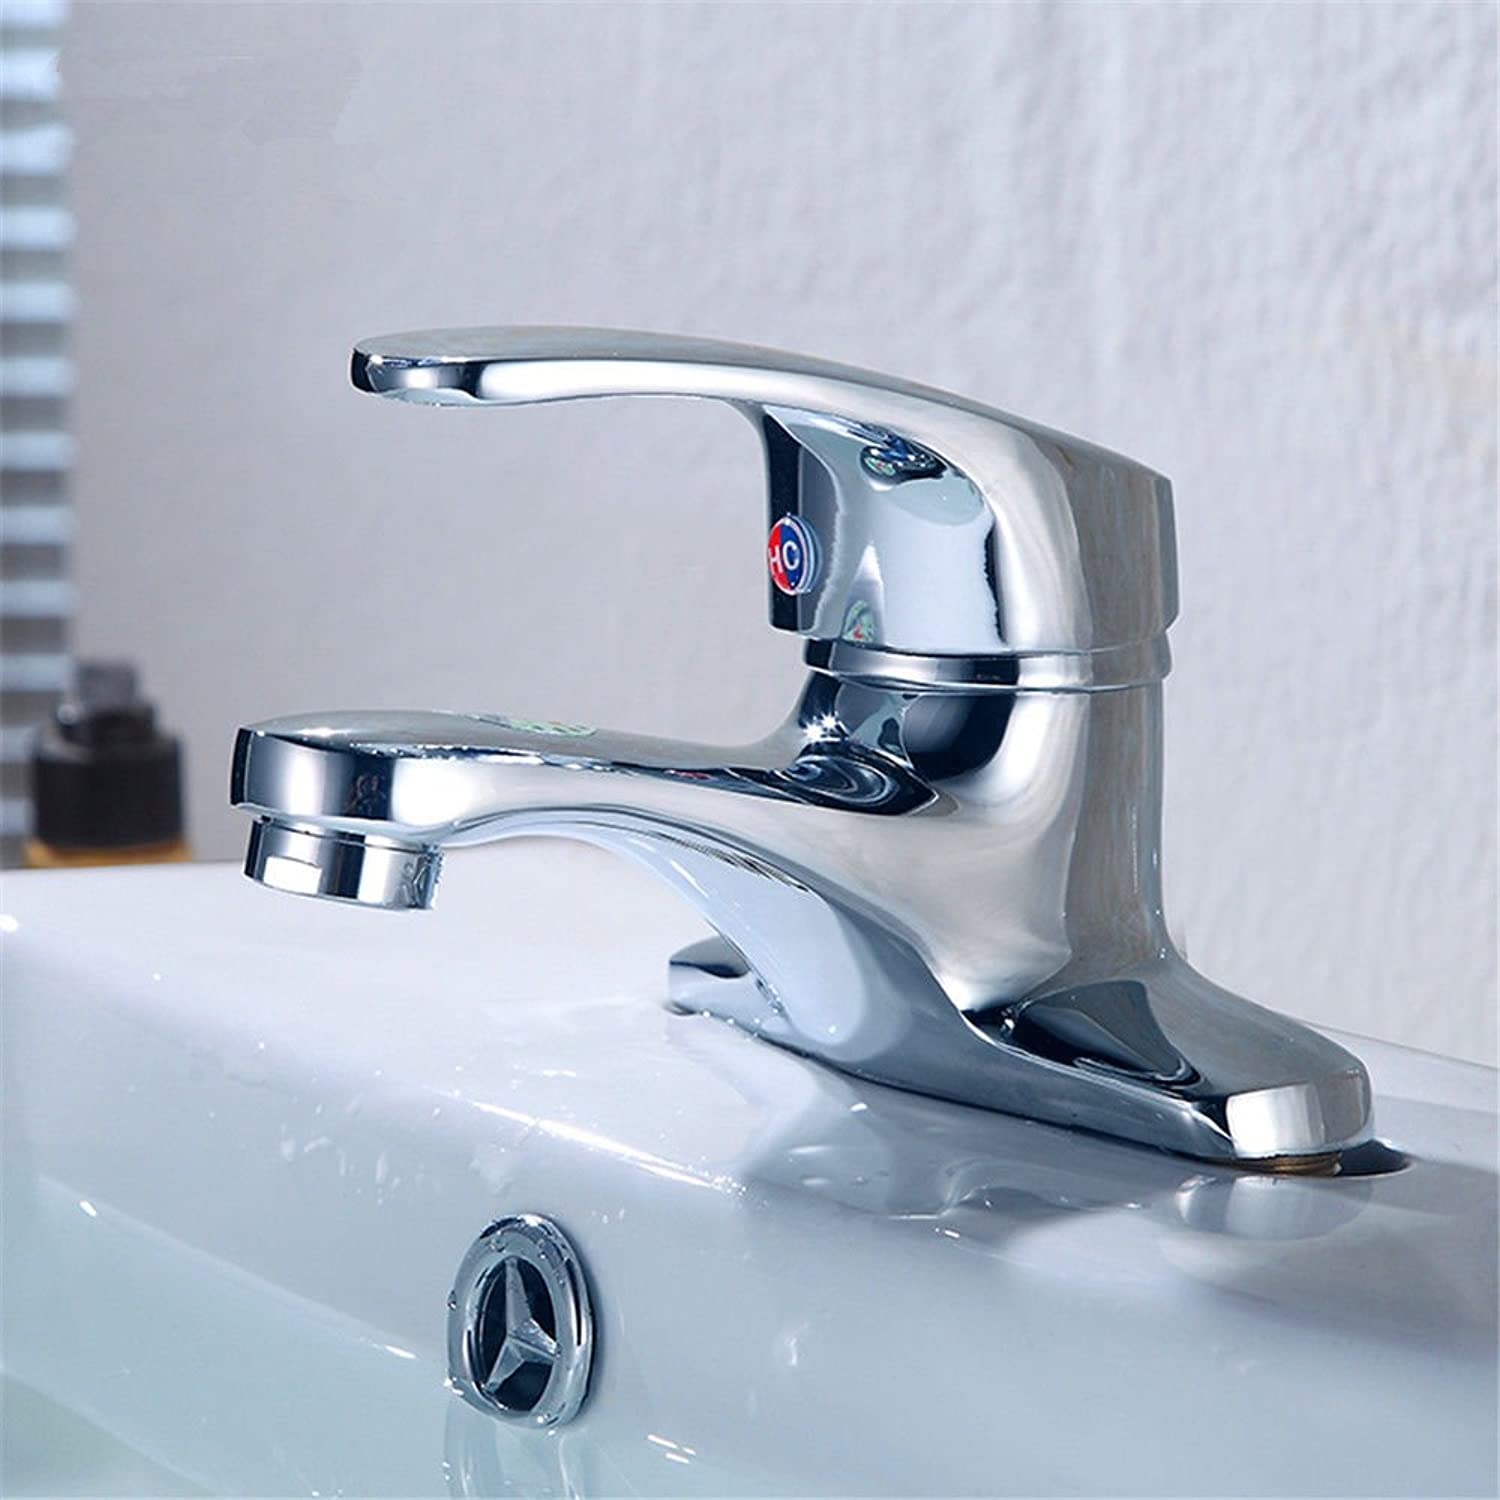 AQMMi Bathroom Sink Mixer Tap 2 Holes Hot and Cold Water Brass Taps for Bathroom Sink